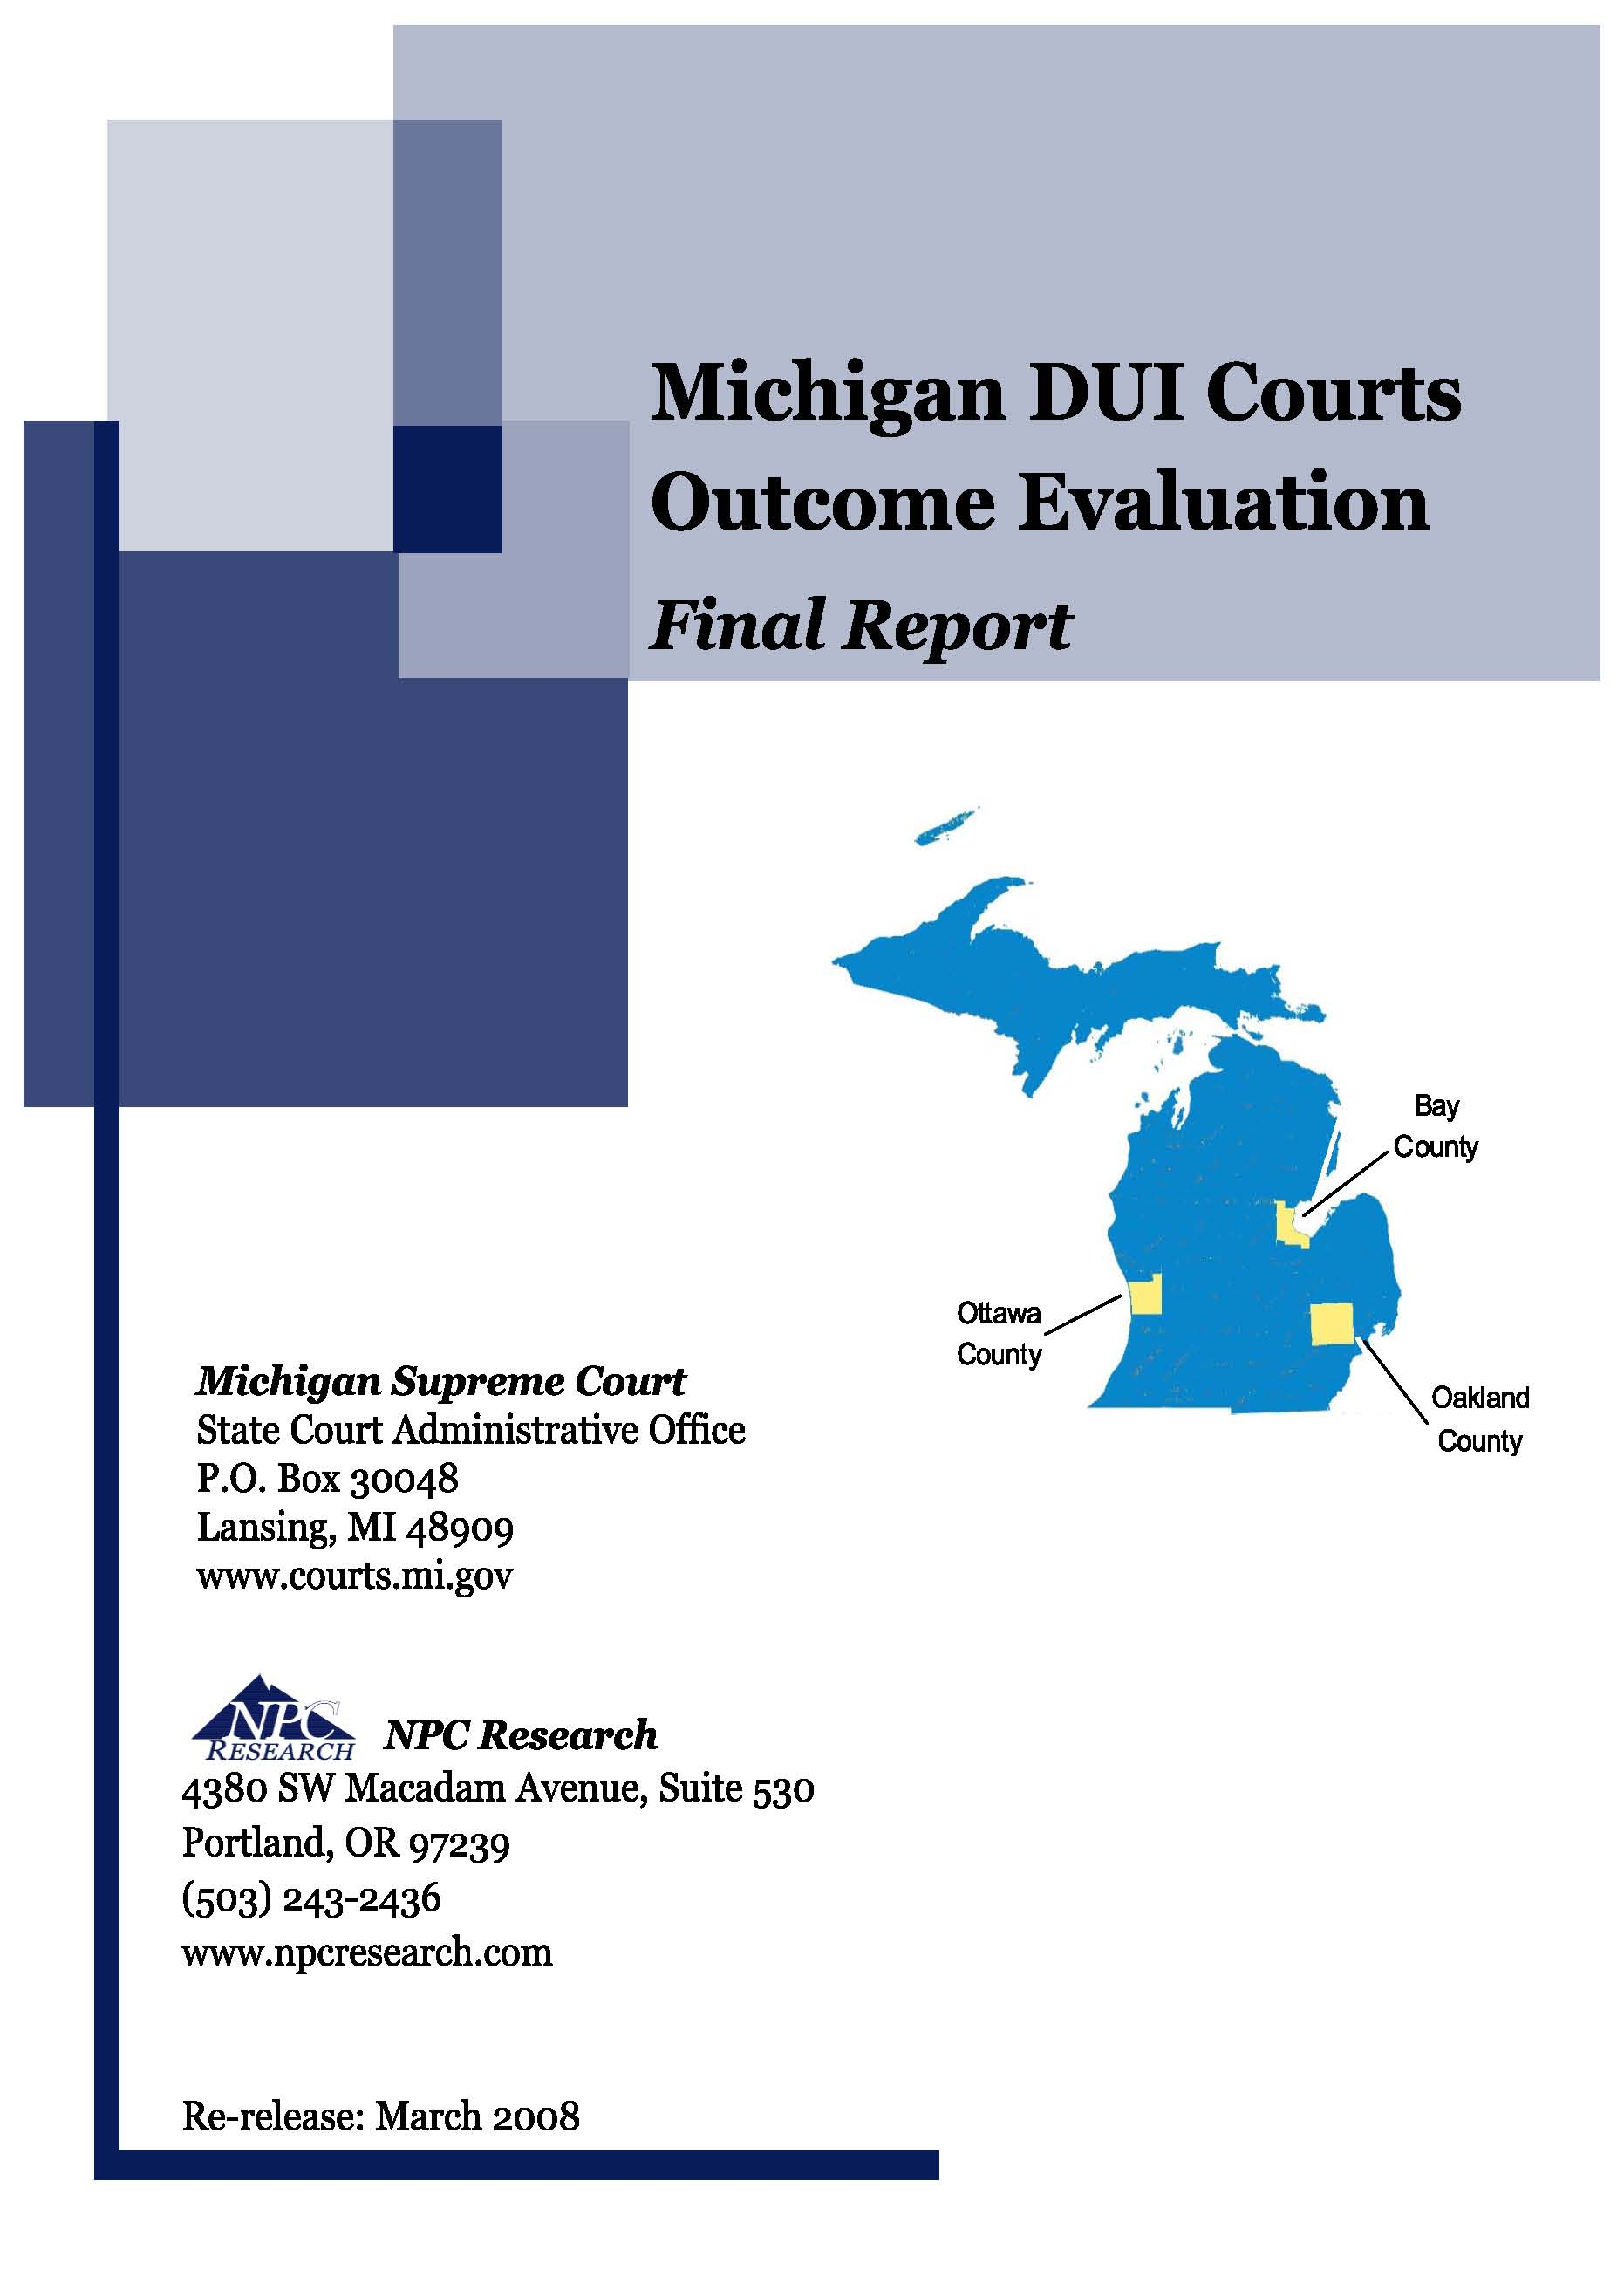 mi-dui-outcome-evaluation-final-report-re-release-march-2008-mi-dui-outcome-evaluation-final-report-re-release-march-2008_0